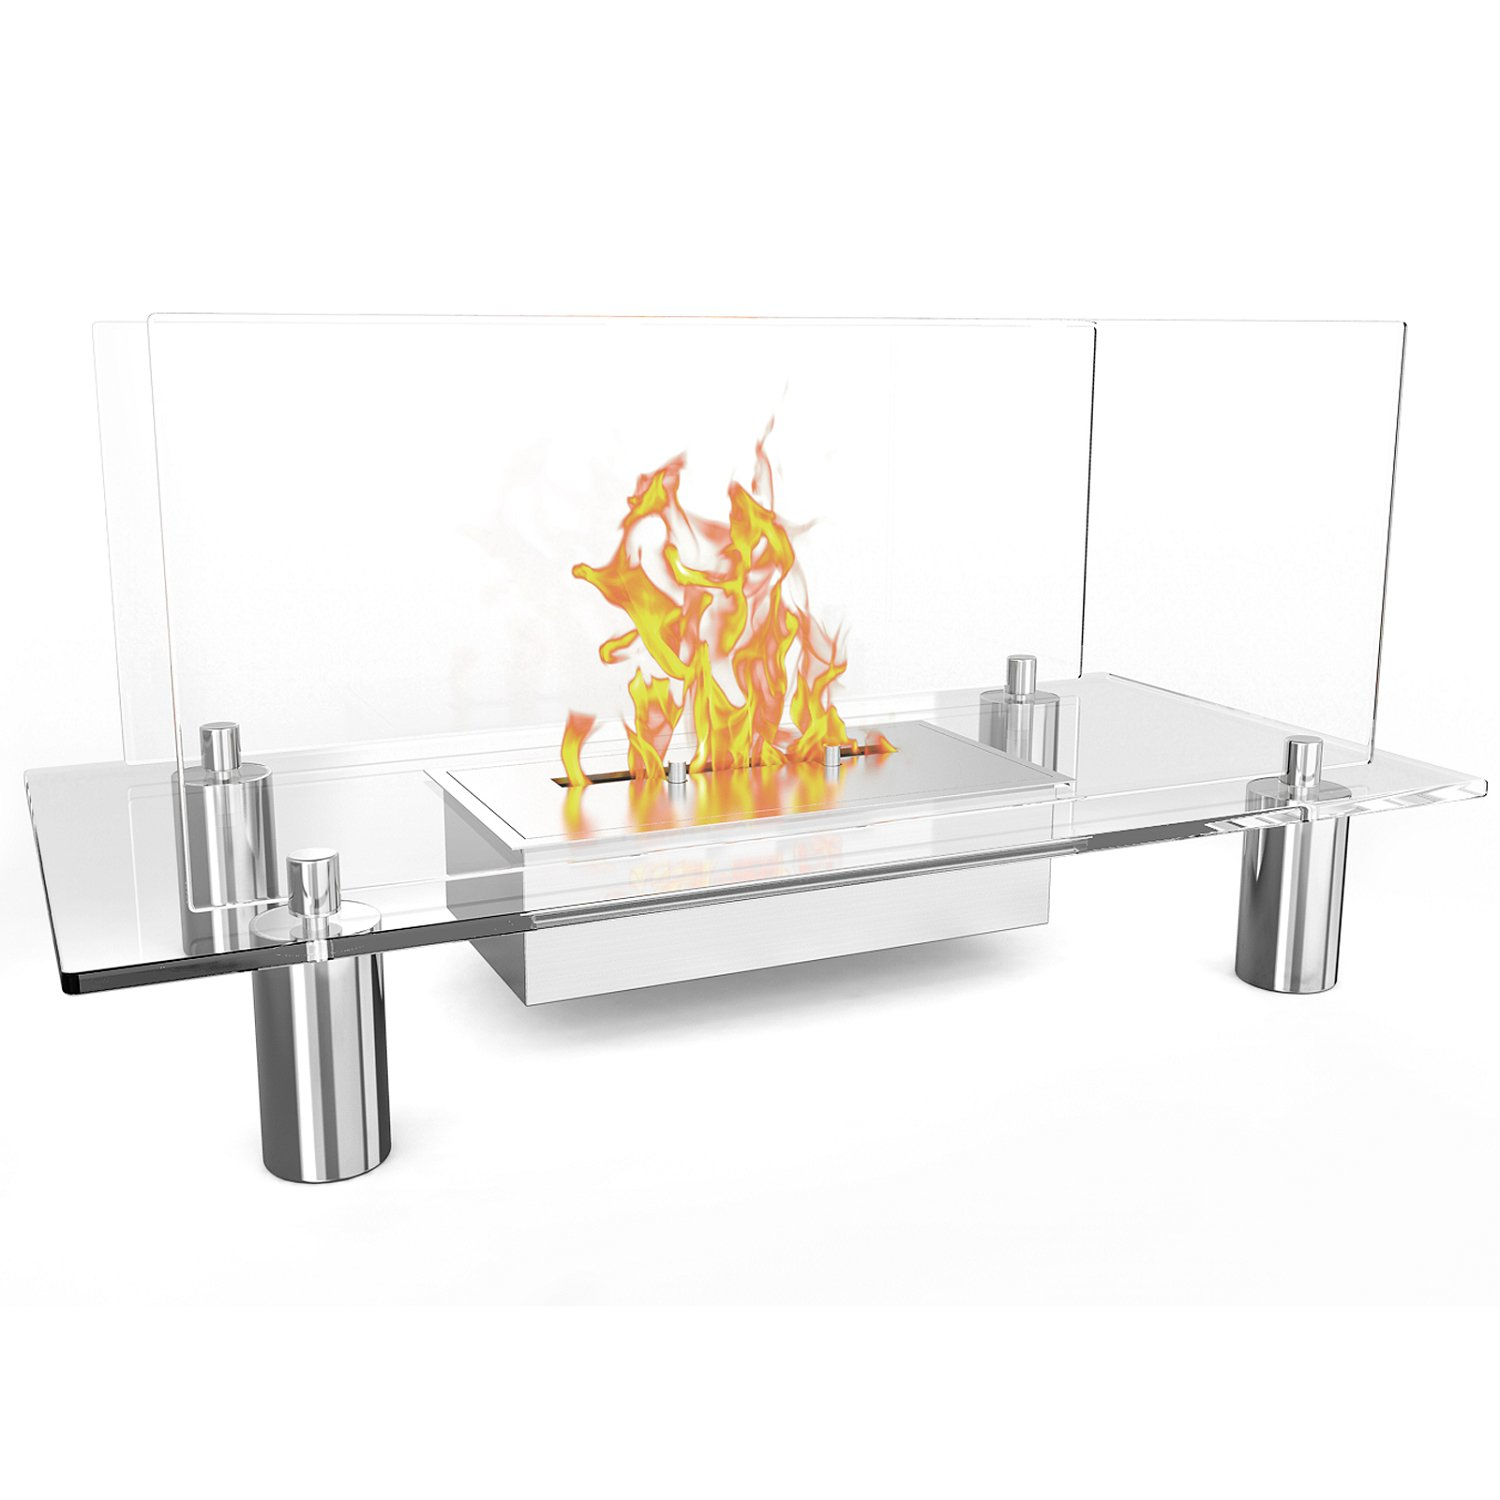 Regal Flame Delano Ventless Free Standing Bio Ethanol Fireplace Can Be Used as a Indoor, Outdoor, Gas Log Inserts, Vent Free, Electric, Outdoor Fireplaces, Gel, Propane & Fire Pits. by Regal Flame